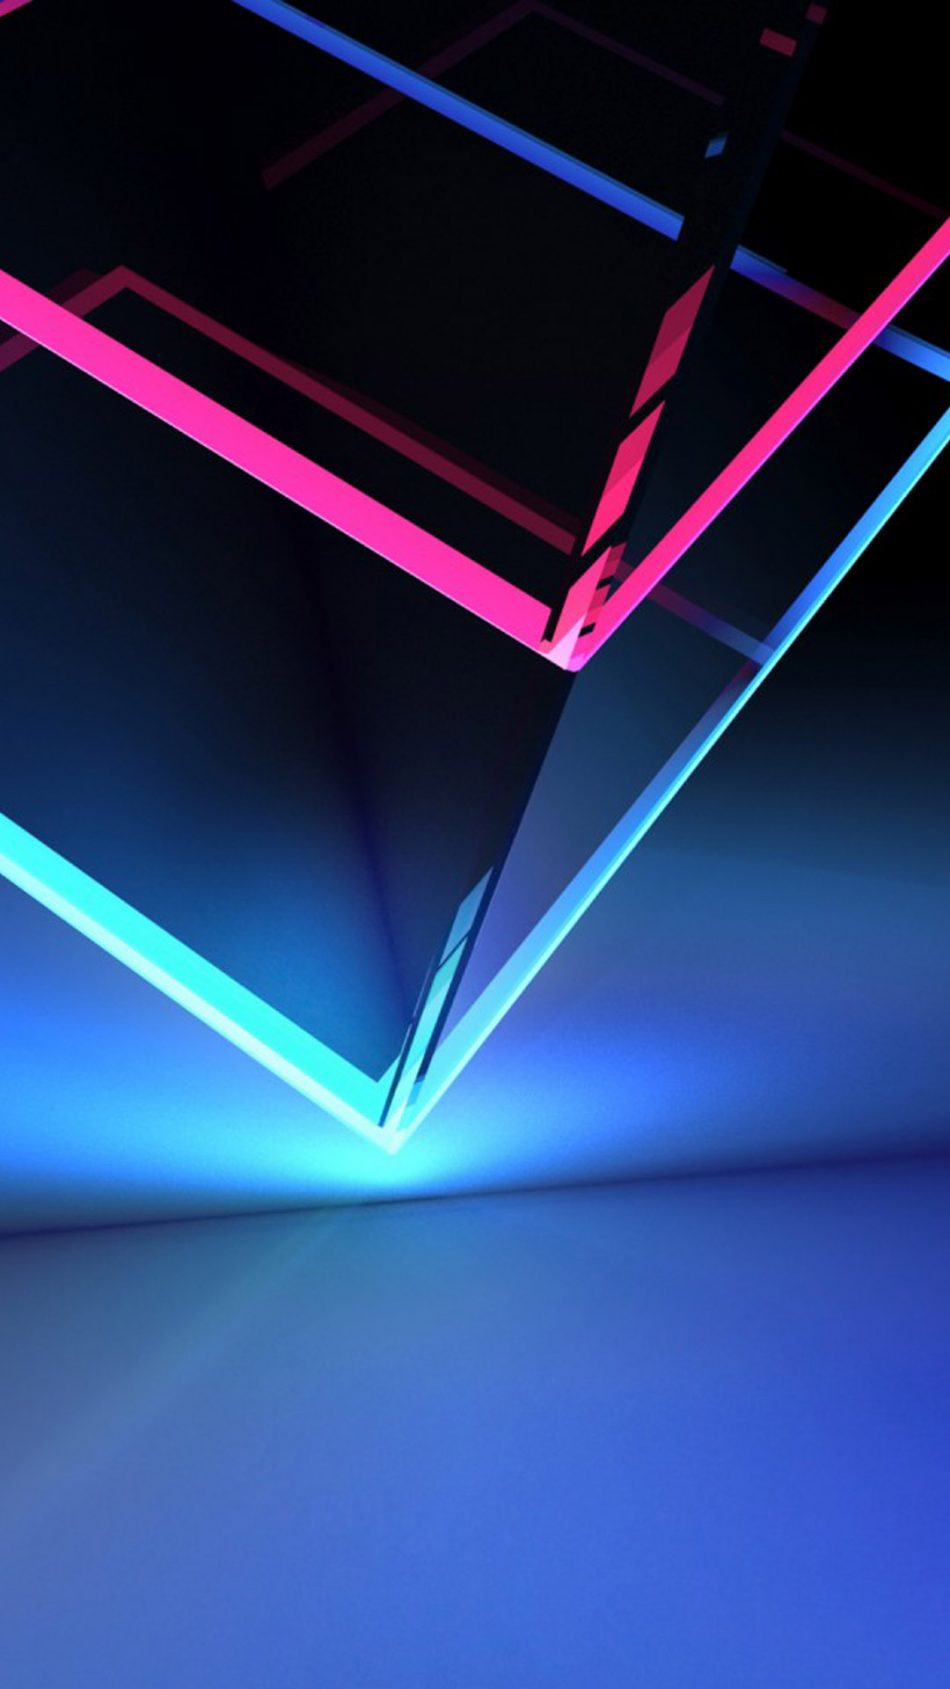 Download 3d Cube Neon Red Blue Light Free Pure 4k Ultra Hd